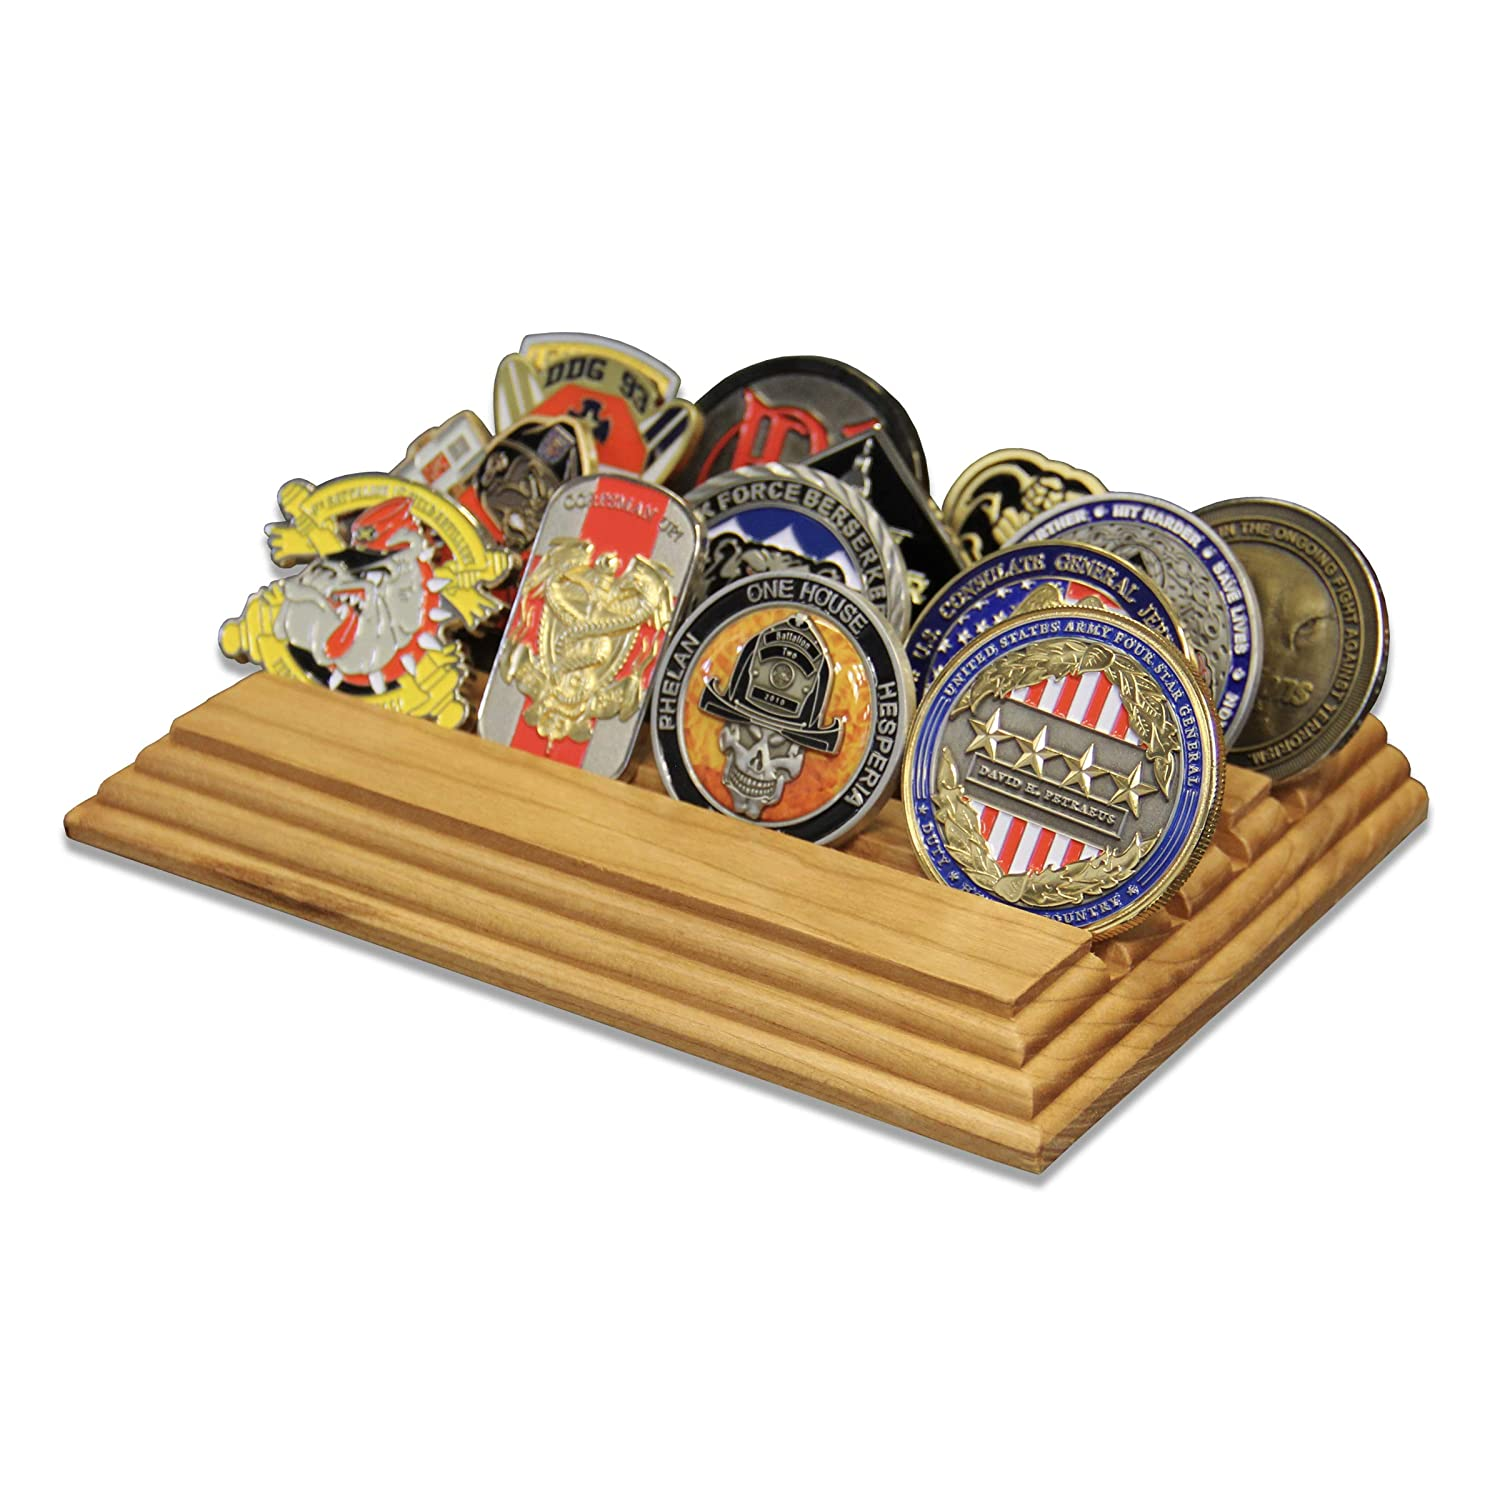 4 Row Challenge Coin Holder Natural Cherry - Military Coin Display Stand -  Amazing Military Challenge Coin Holder - Holds 14-19 Coins 4 Rows Made in